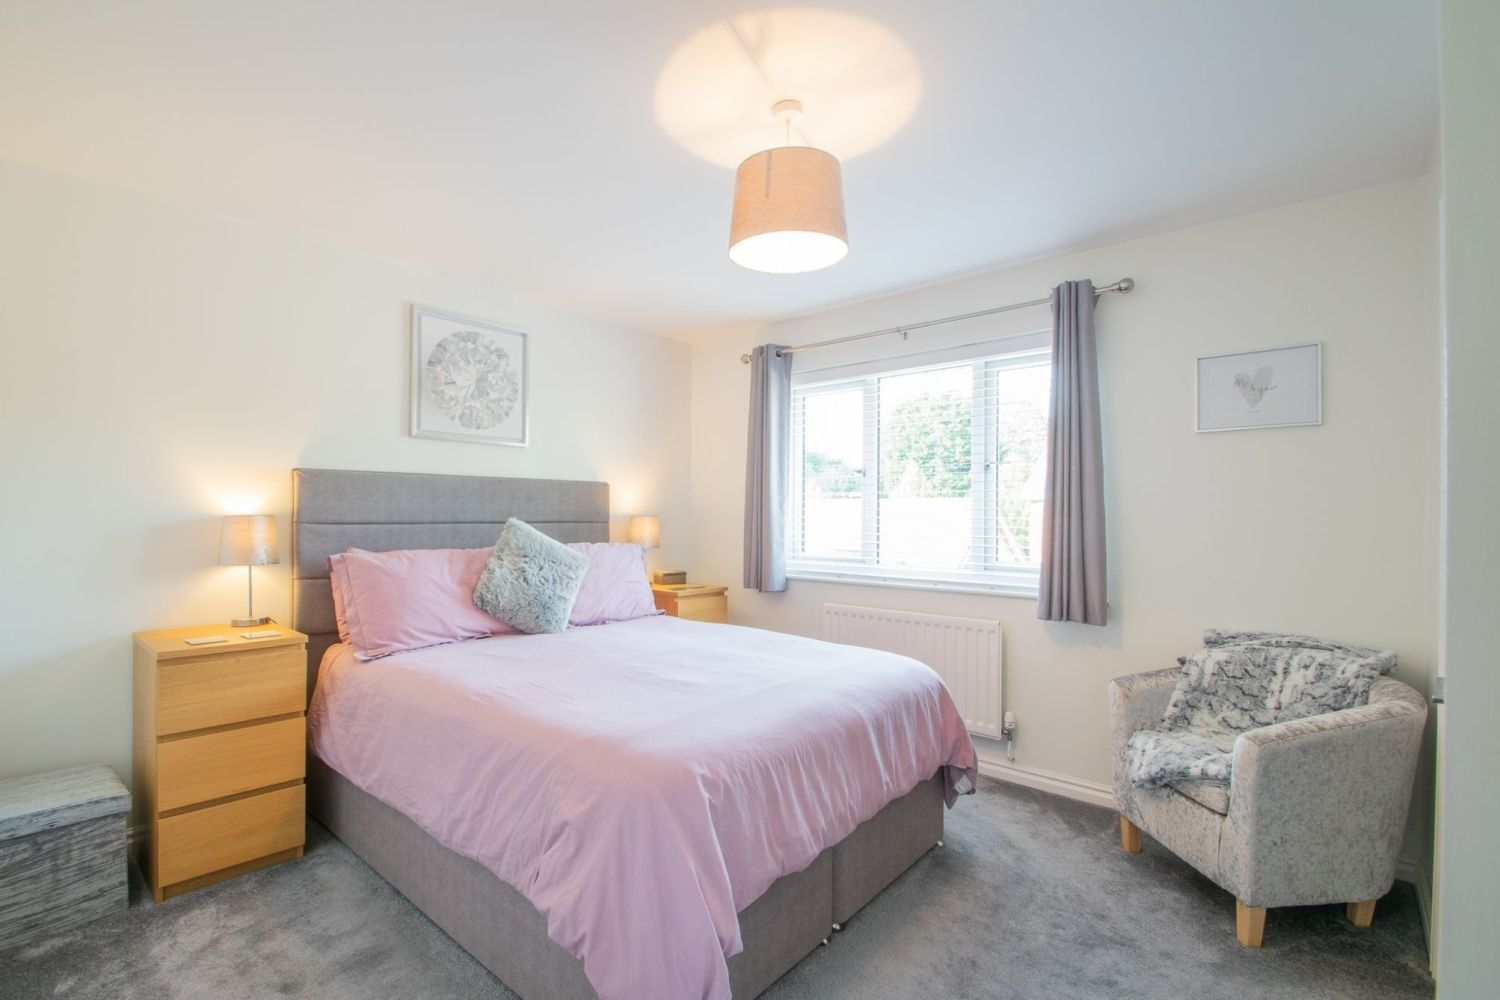 3 bed detached for sale in Batchelor Close, Amblecote 10